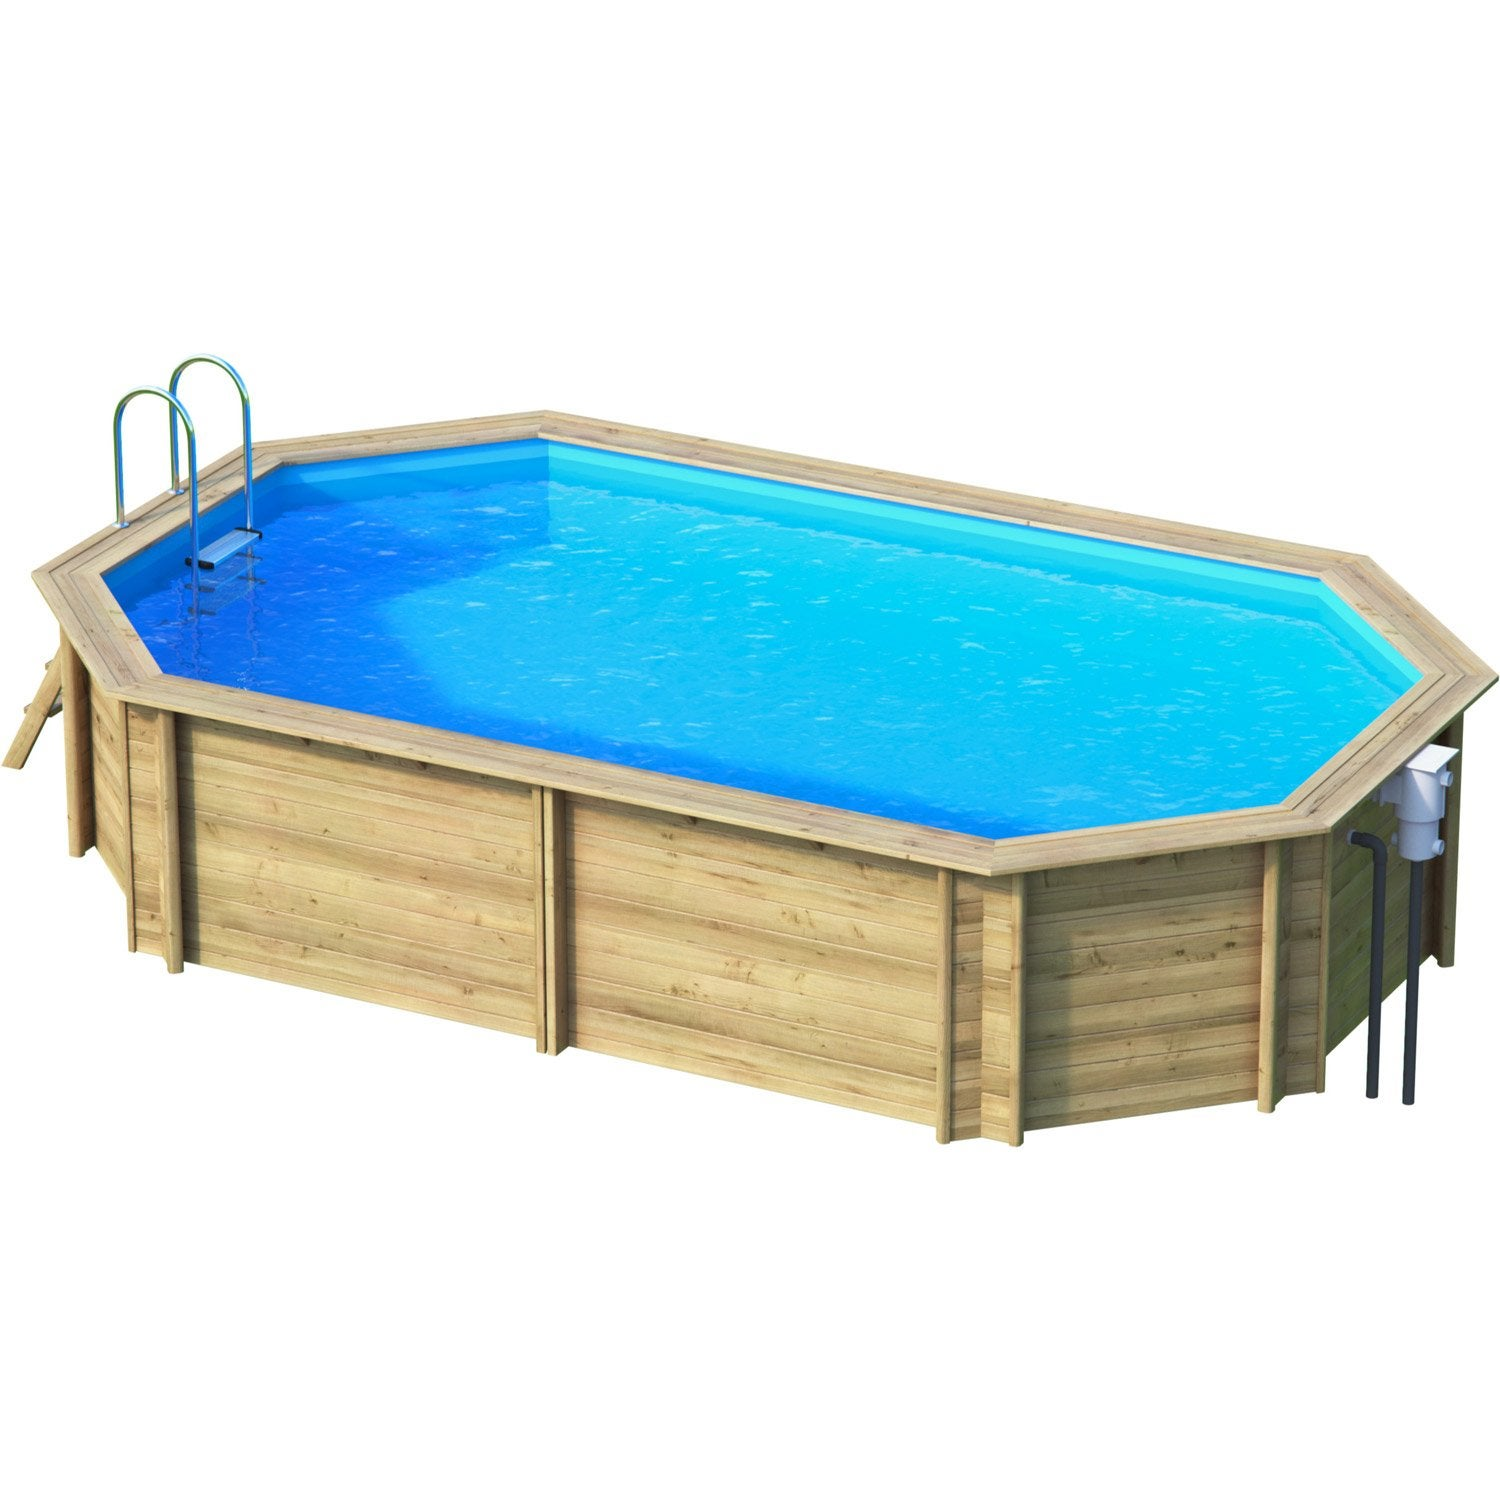 Piscine hors sol bois weva proswell by procopi l 6 4 x l for Piscine hors sol tubulaire amazon